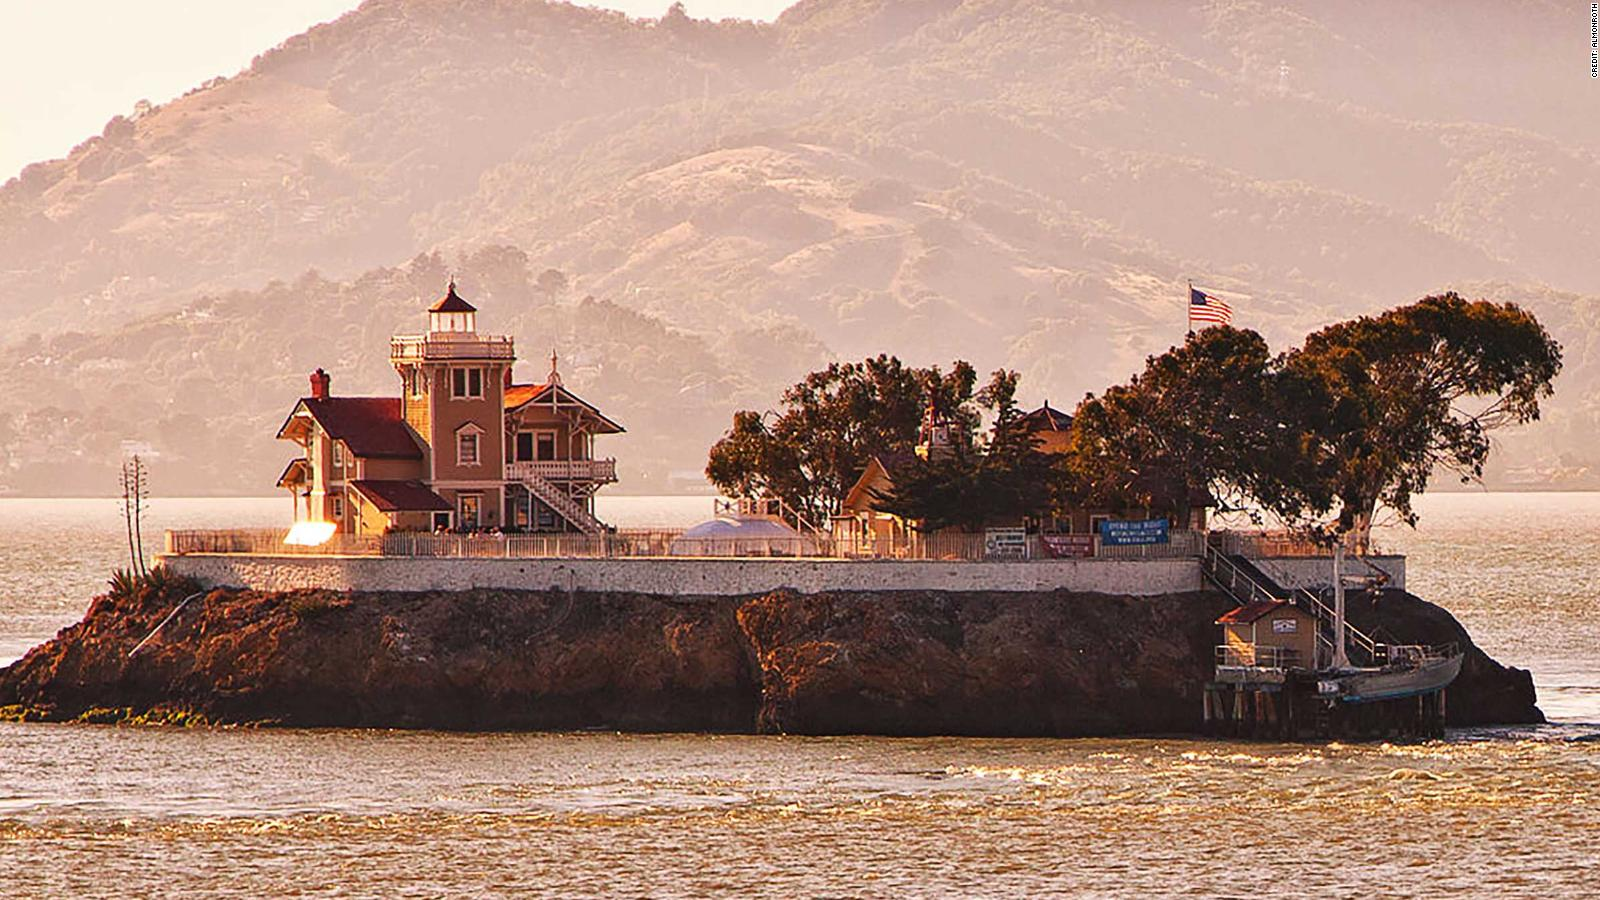 Be a lighthouse keeper at San Francisco Bay island and split